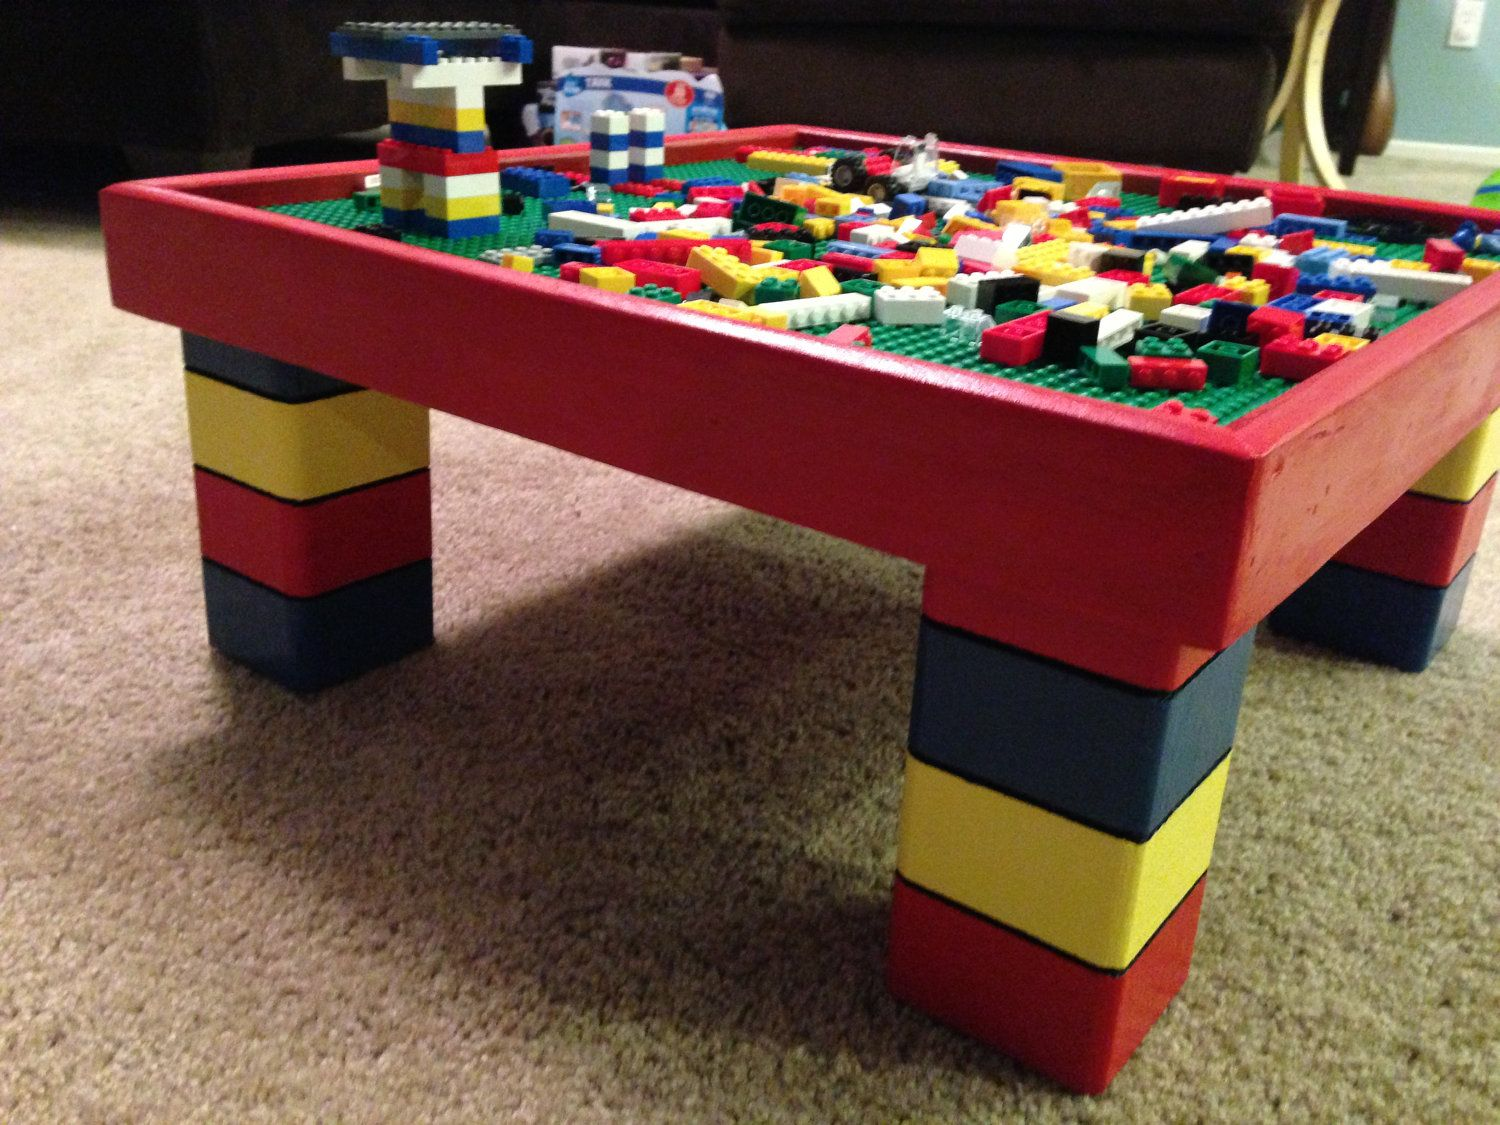 Custom Lego Tables 20x20x10 By WooderfulCreations On Etsy, $149.00